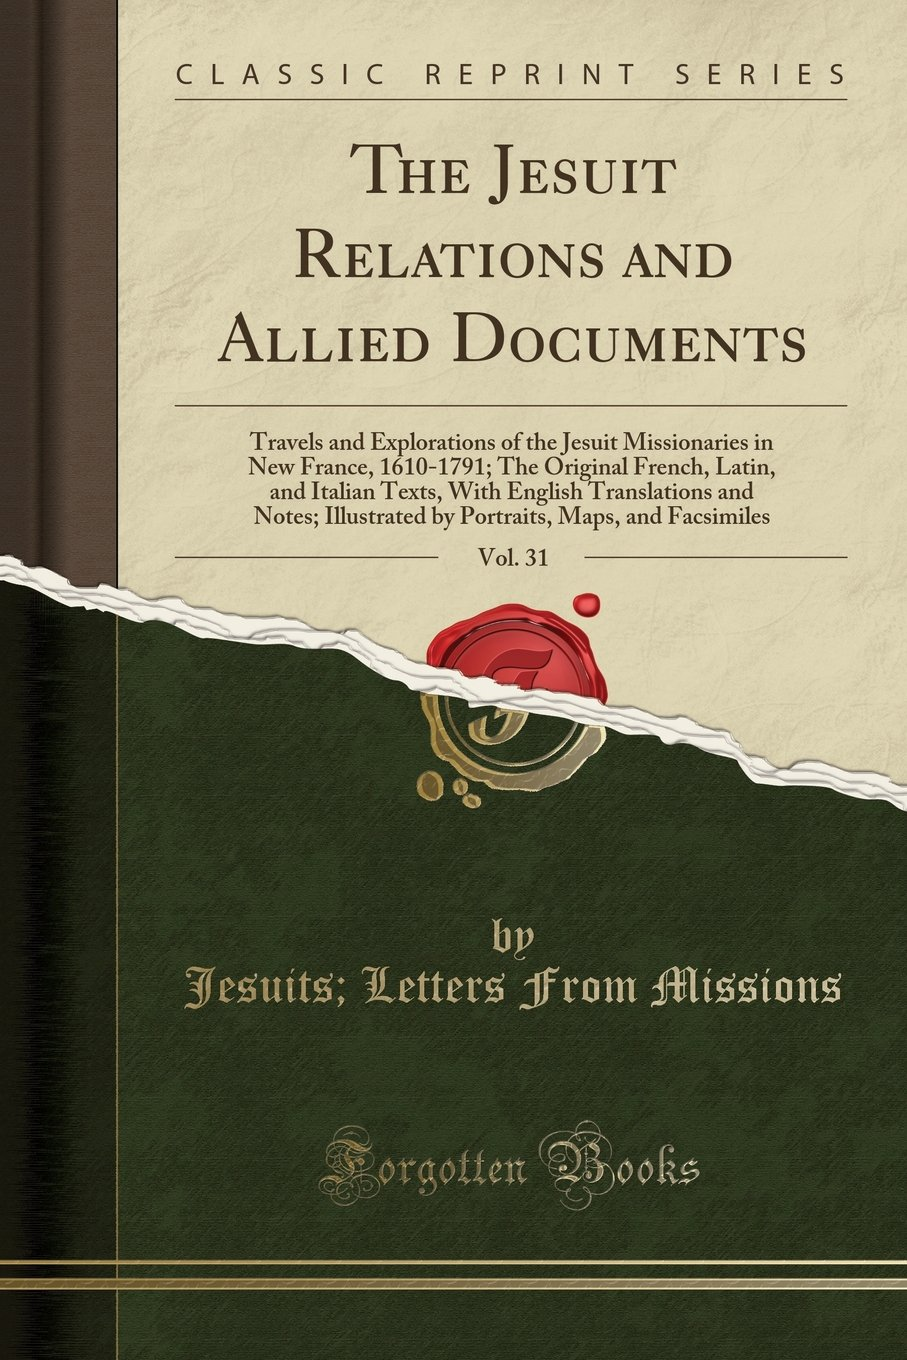 The Jesuit Relations and Allied Documents, Vol. 31: Travels and Explorations of the Jesuit Missionaries in New France, 1610-1791; The Original French, ... Illustrated by Portraits, Maps, and Facsi PDF